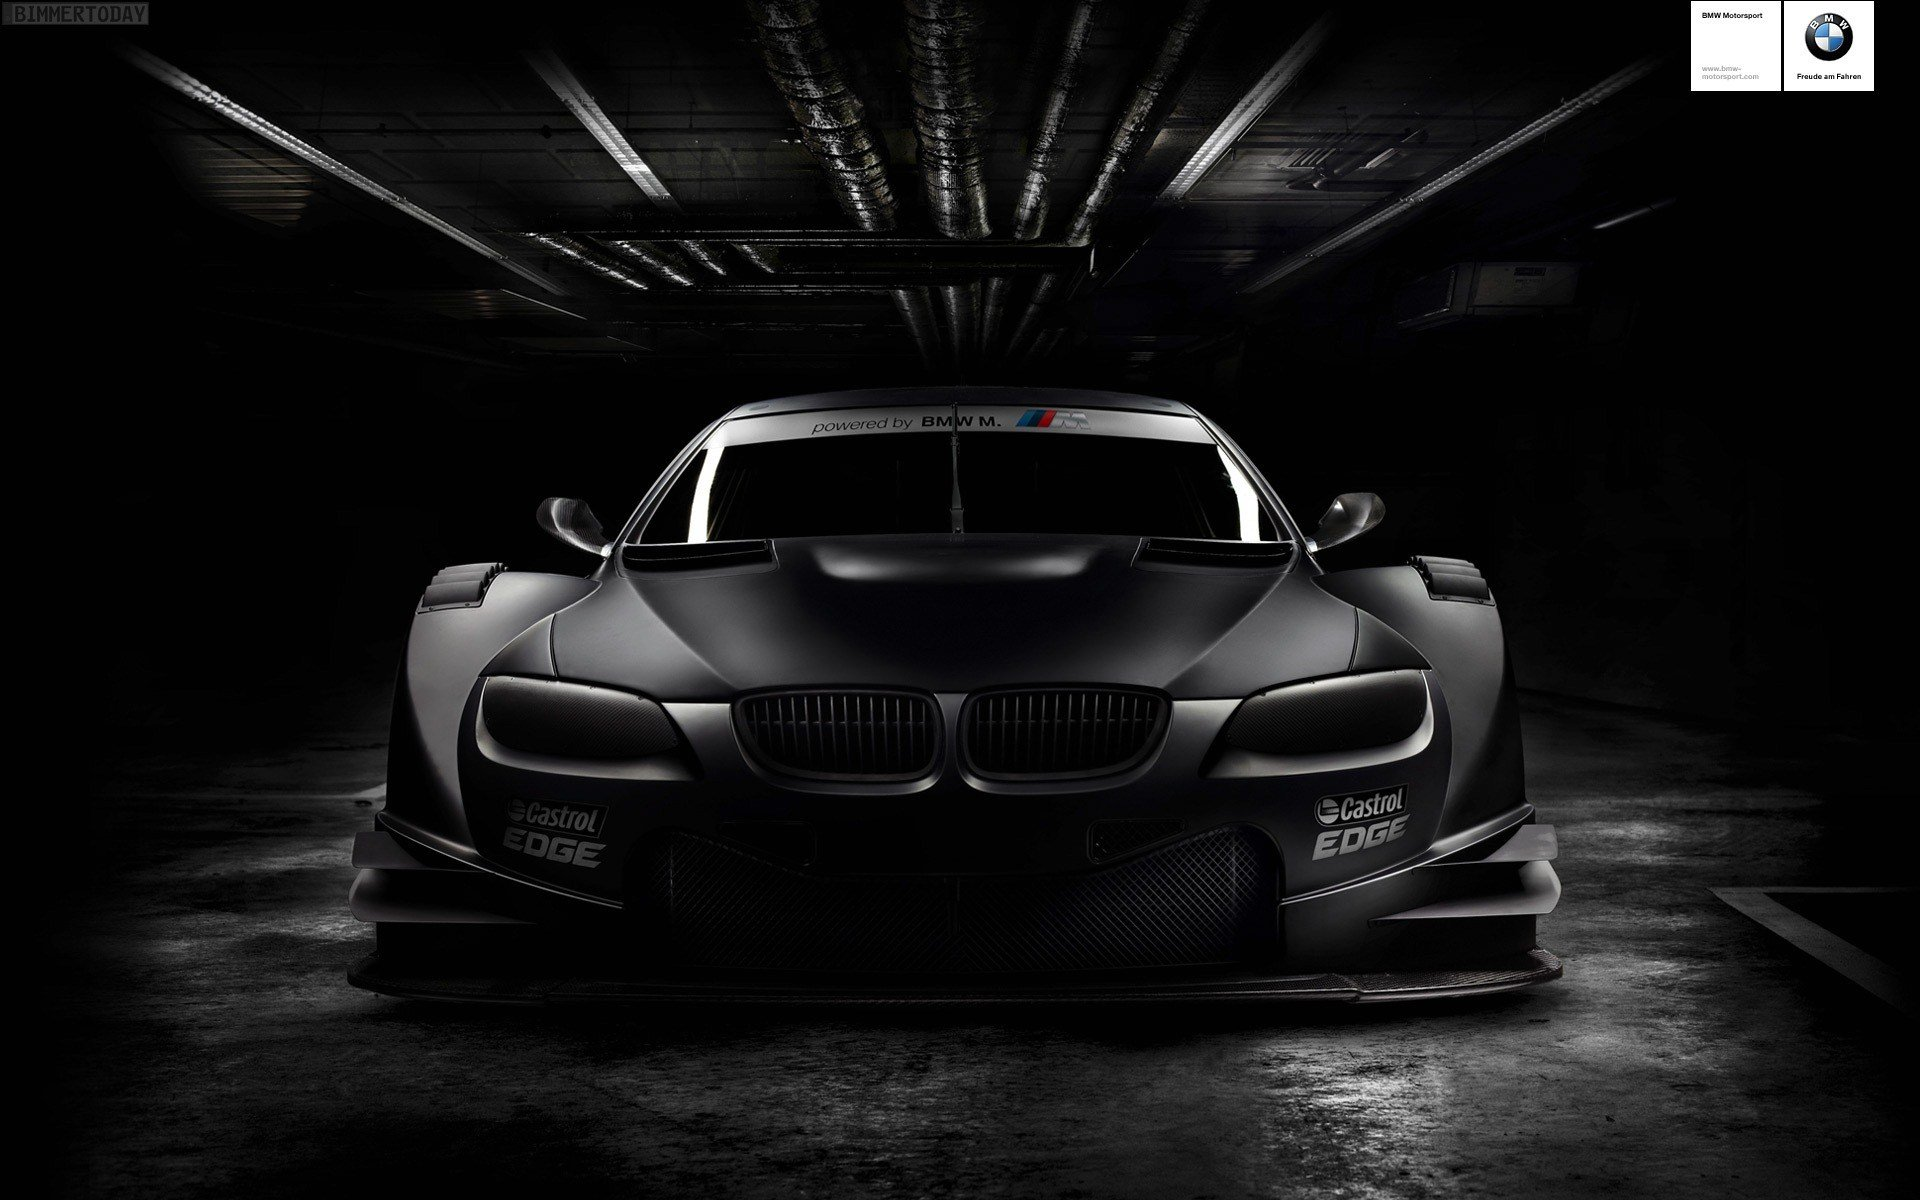 Latest 50 Hd Bmw Wallpapers Backgrounds For Free Download